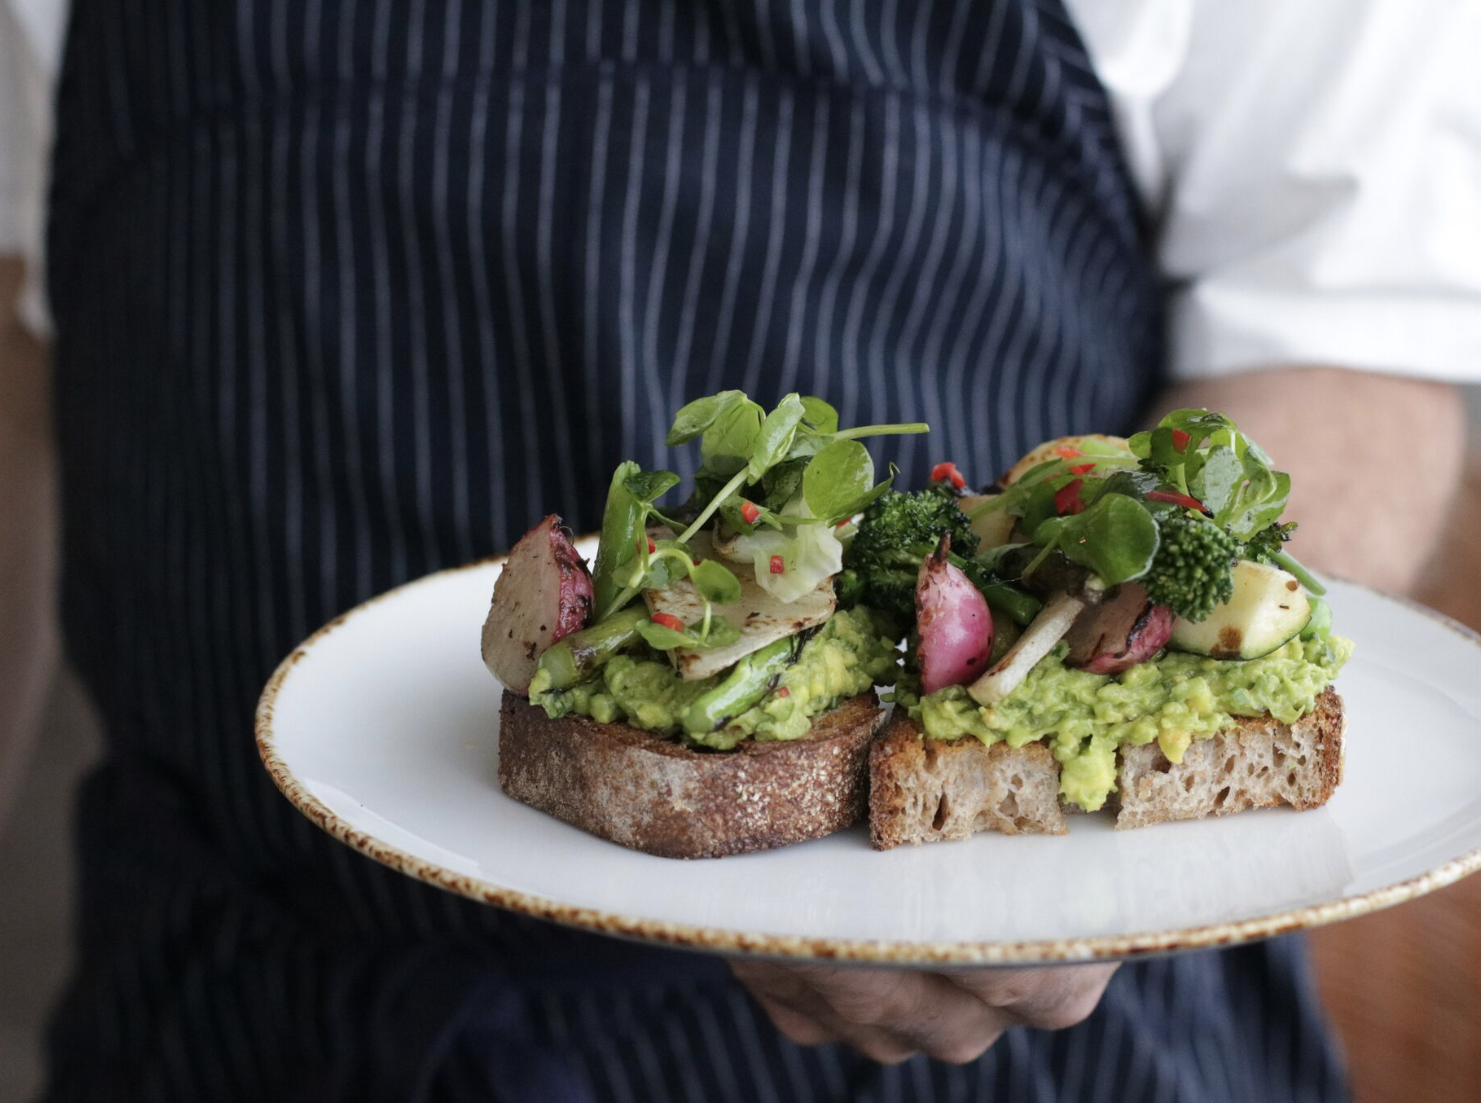 Avocado toast from Farmhouse in Los Angeles. Farmhouse is set to open early 2020 at Scottsdale Fashion Square's luxury wing.